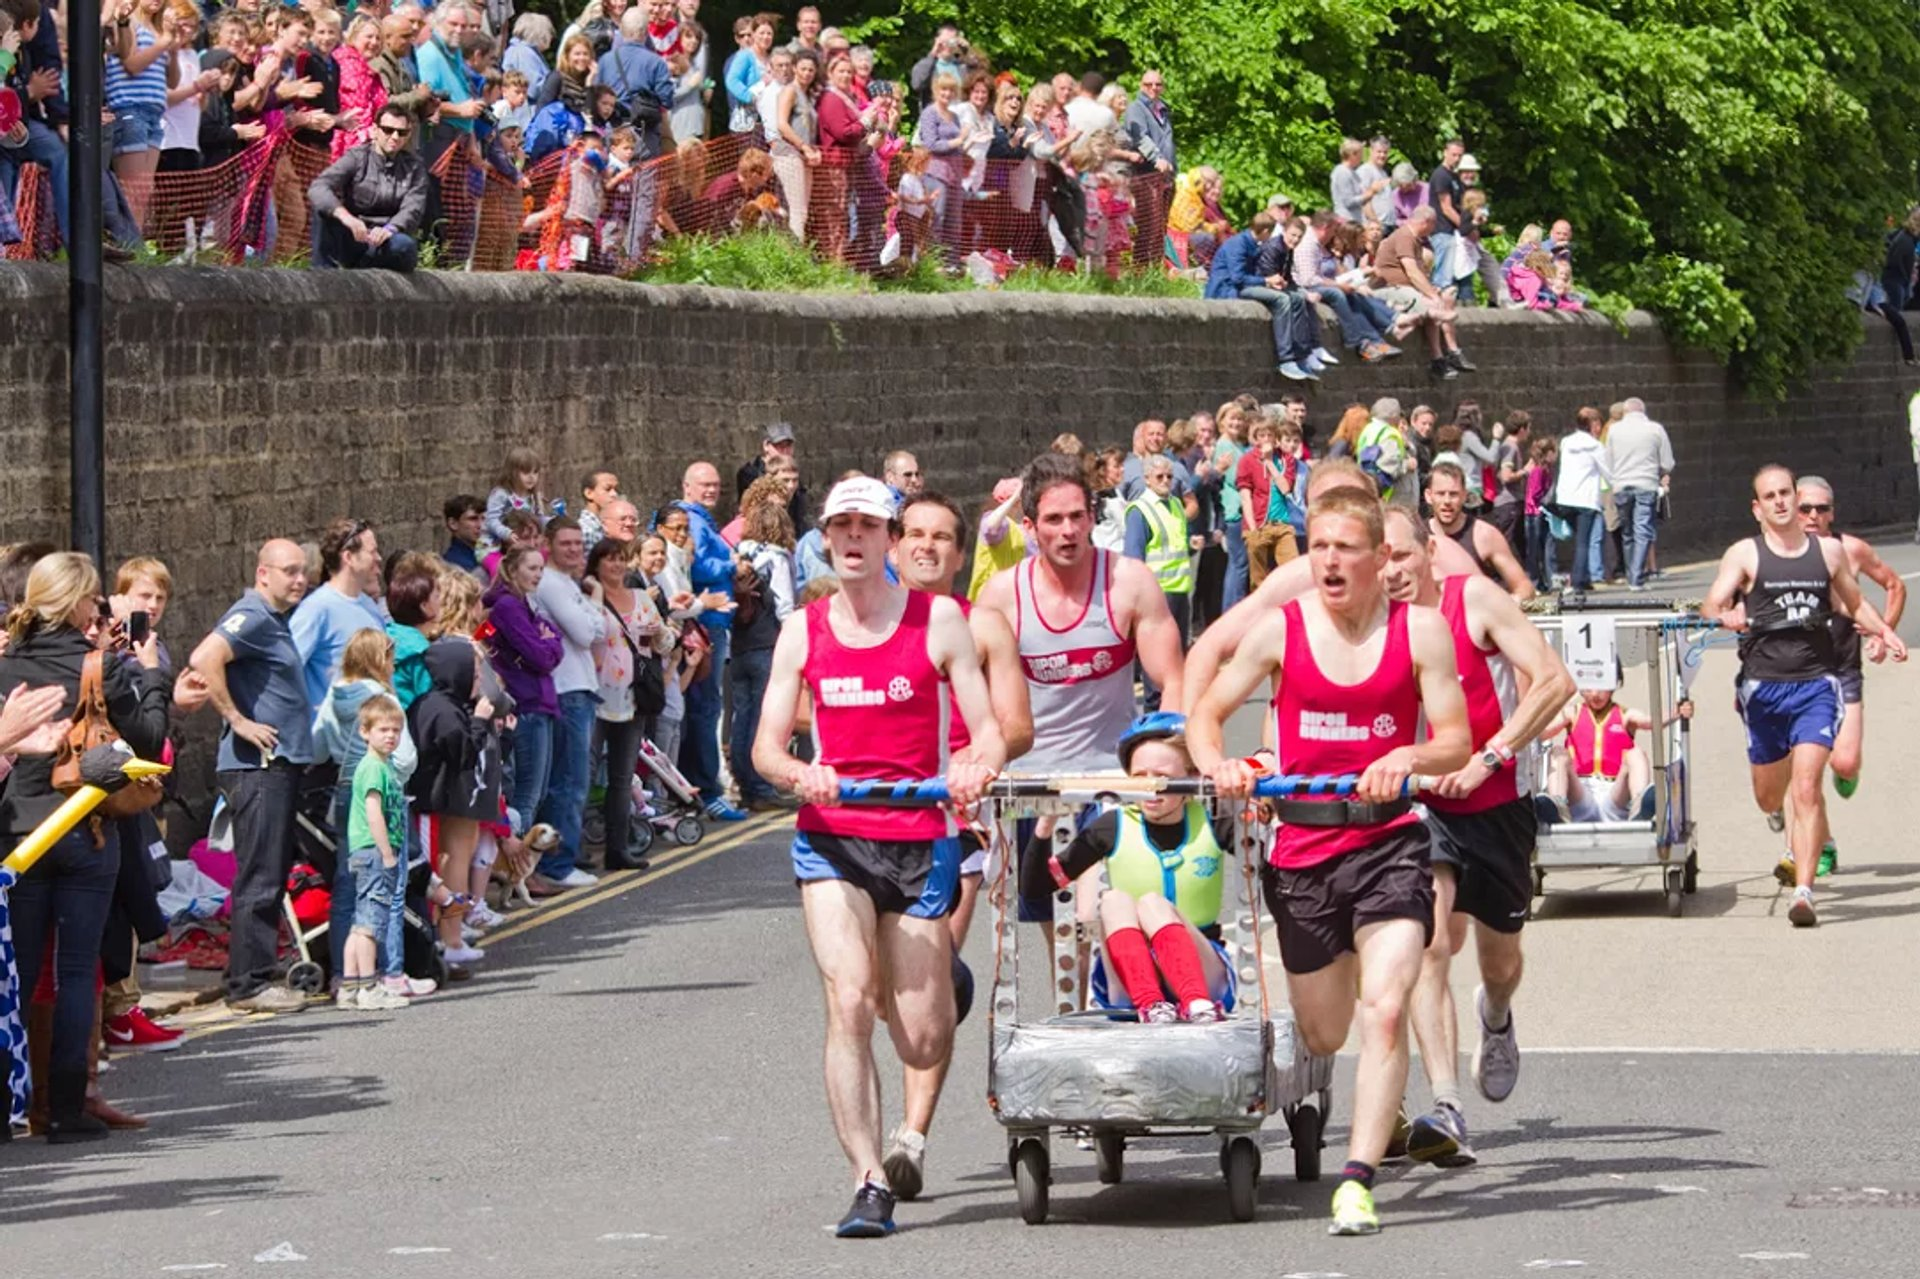 Best time for Knaresborough Bed Race in England 2019